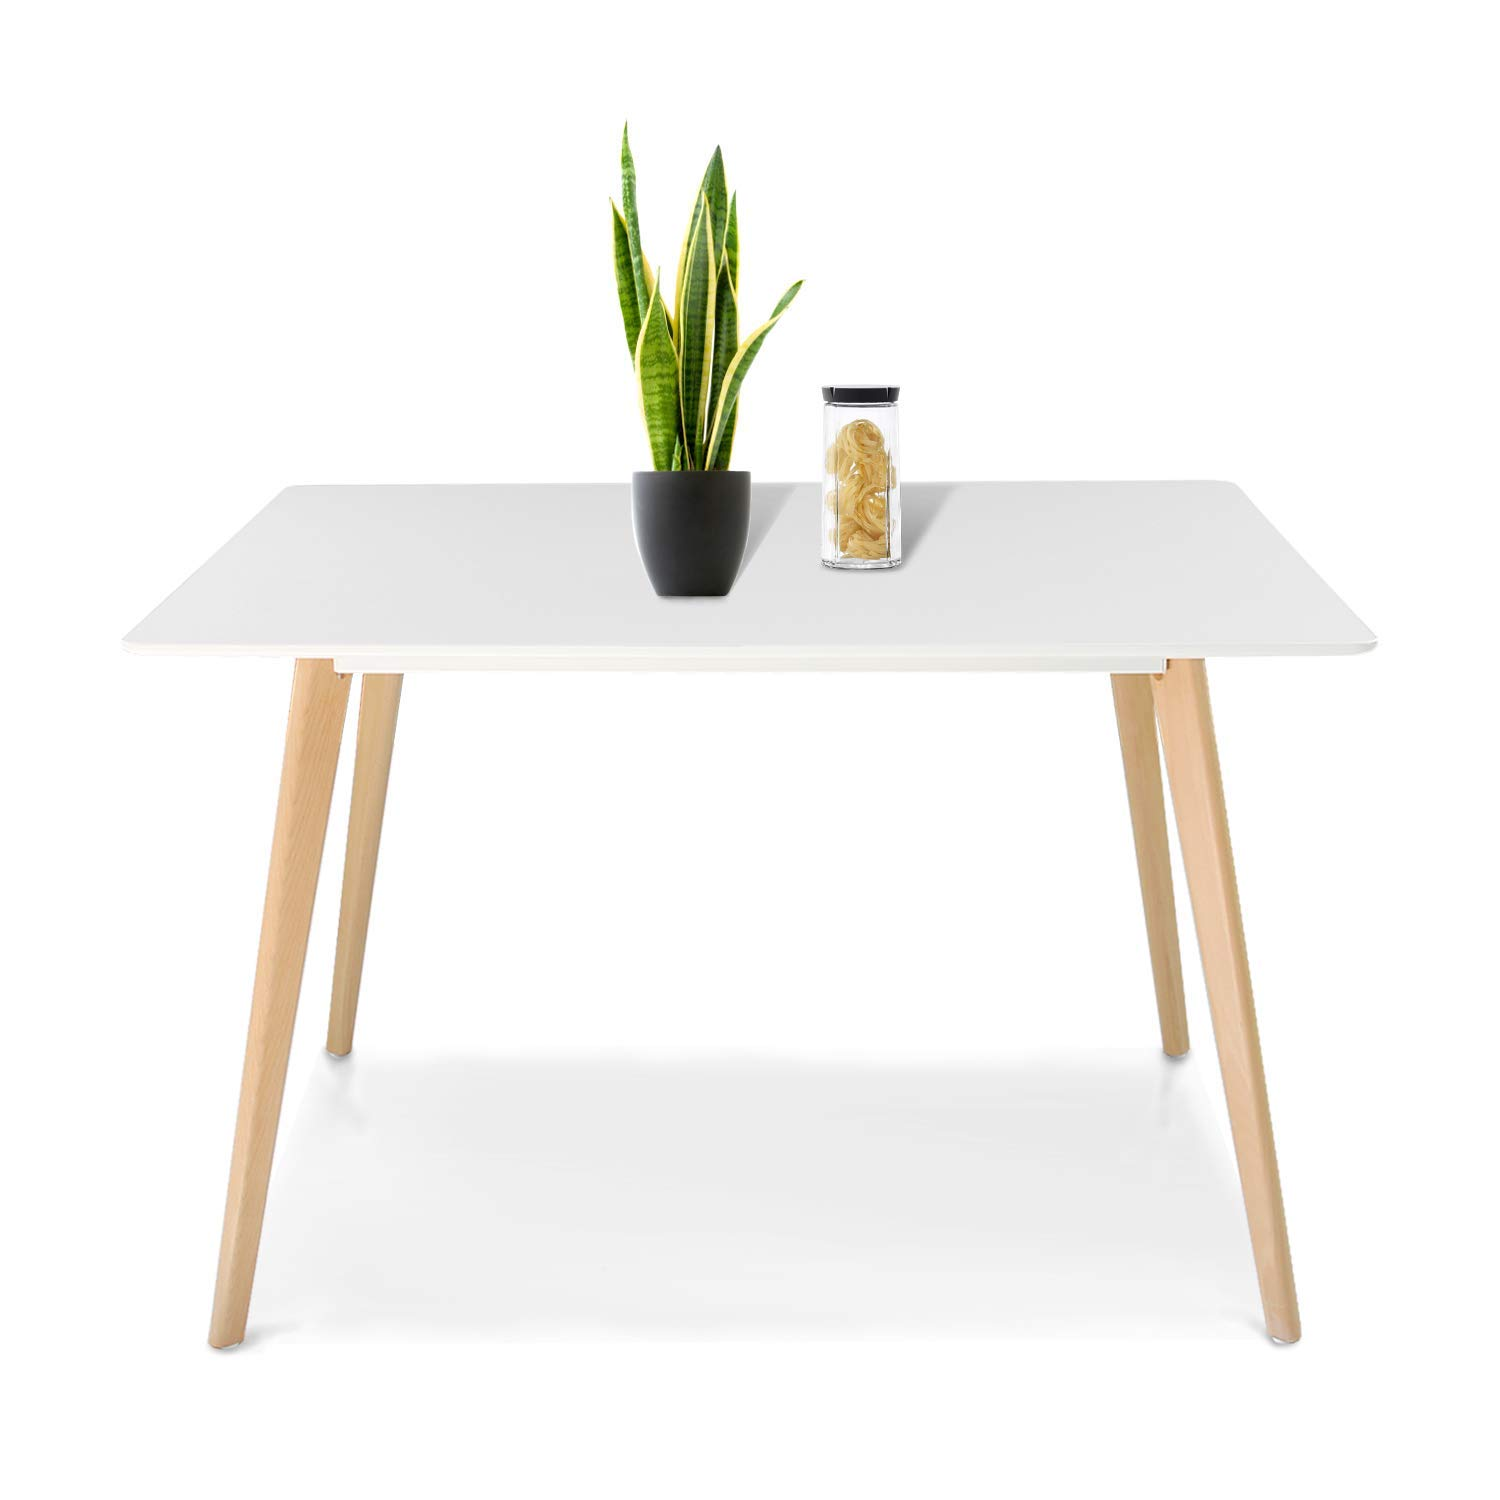 Jerry & Maggie - Dinner Table Desk Large Family Size with Wood Legs Stone Like Polish Surface Multi Purpose Work Study Living Room Kitchen Furniture Decor Modern Fashion Simple - Rectangle | White